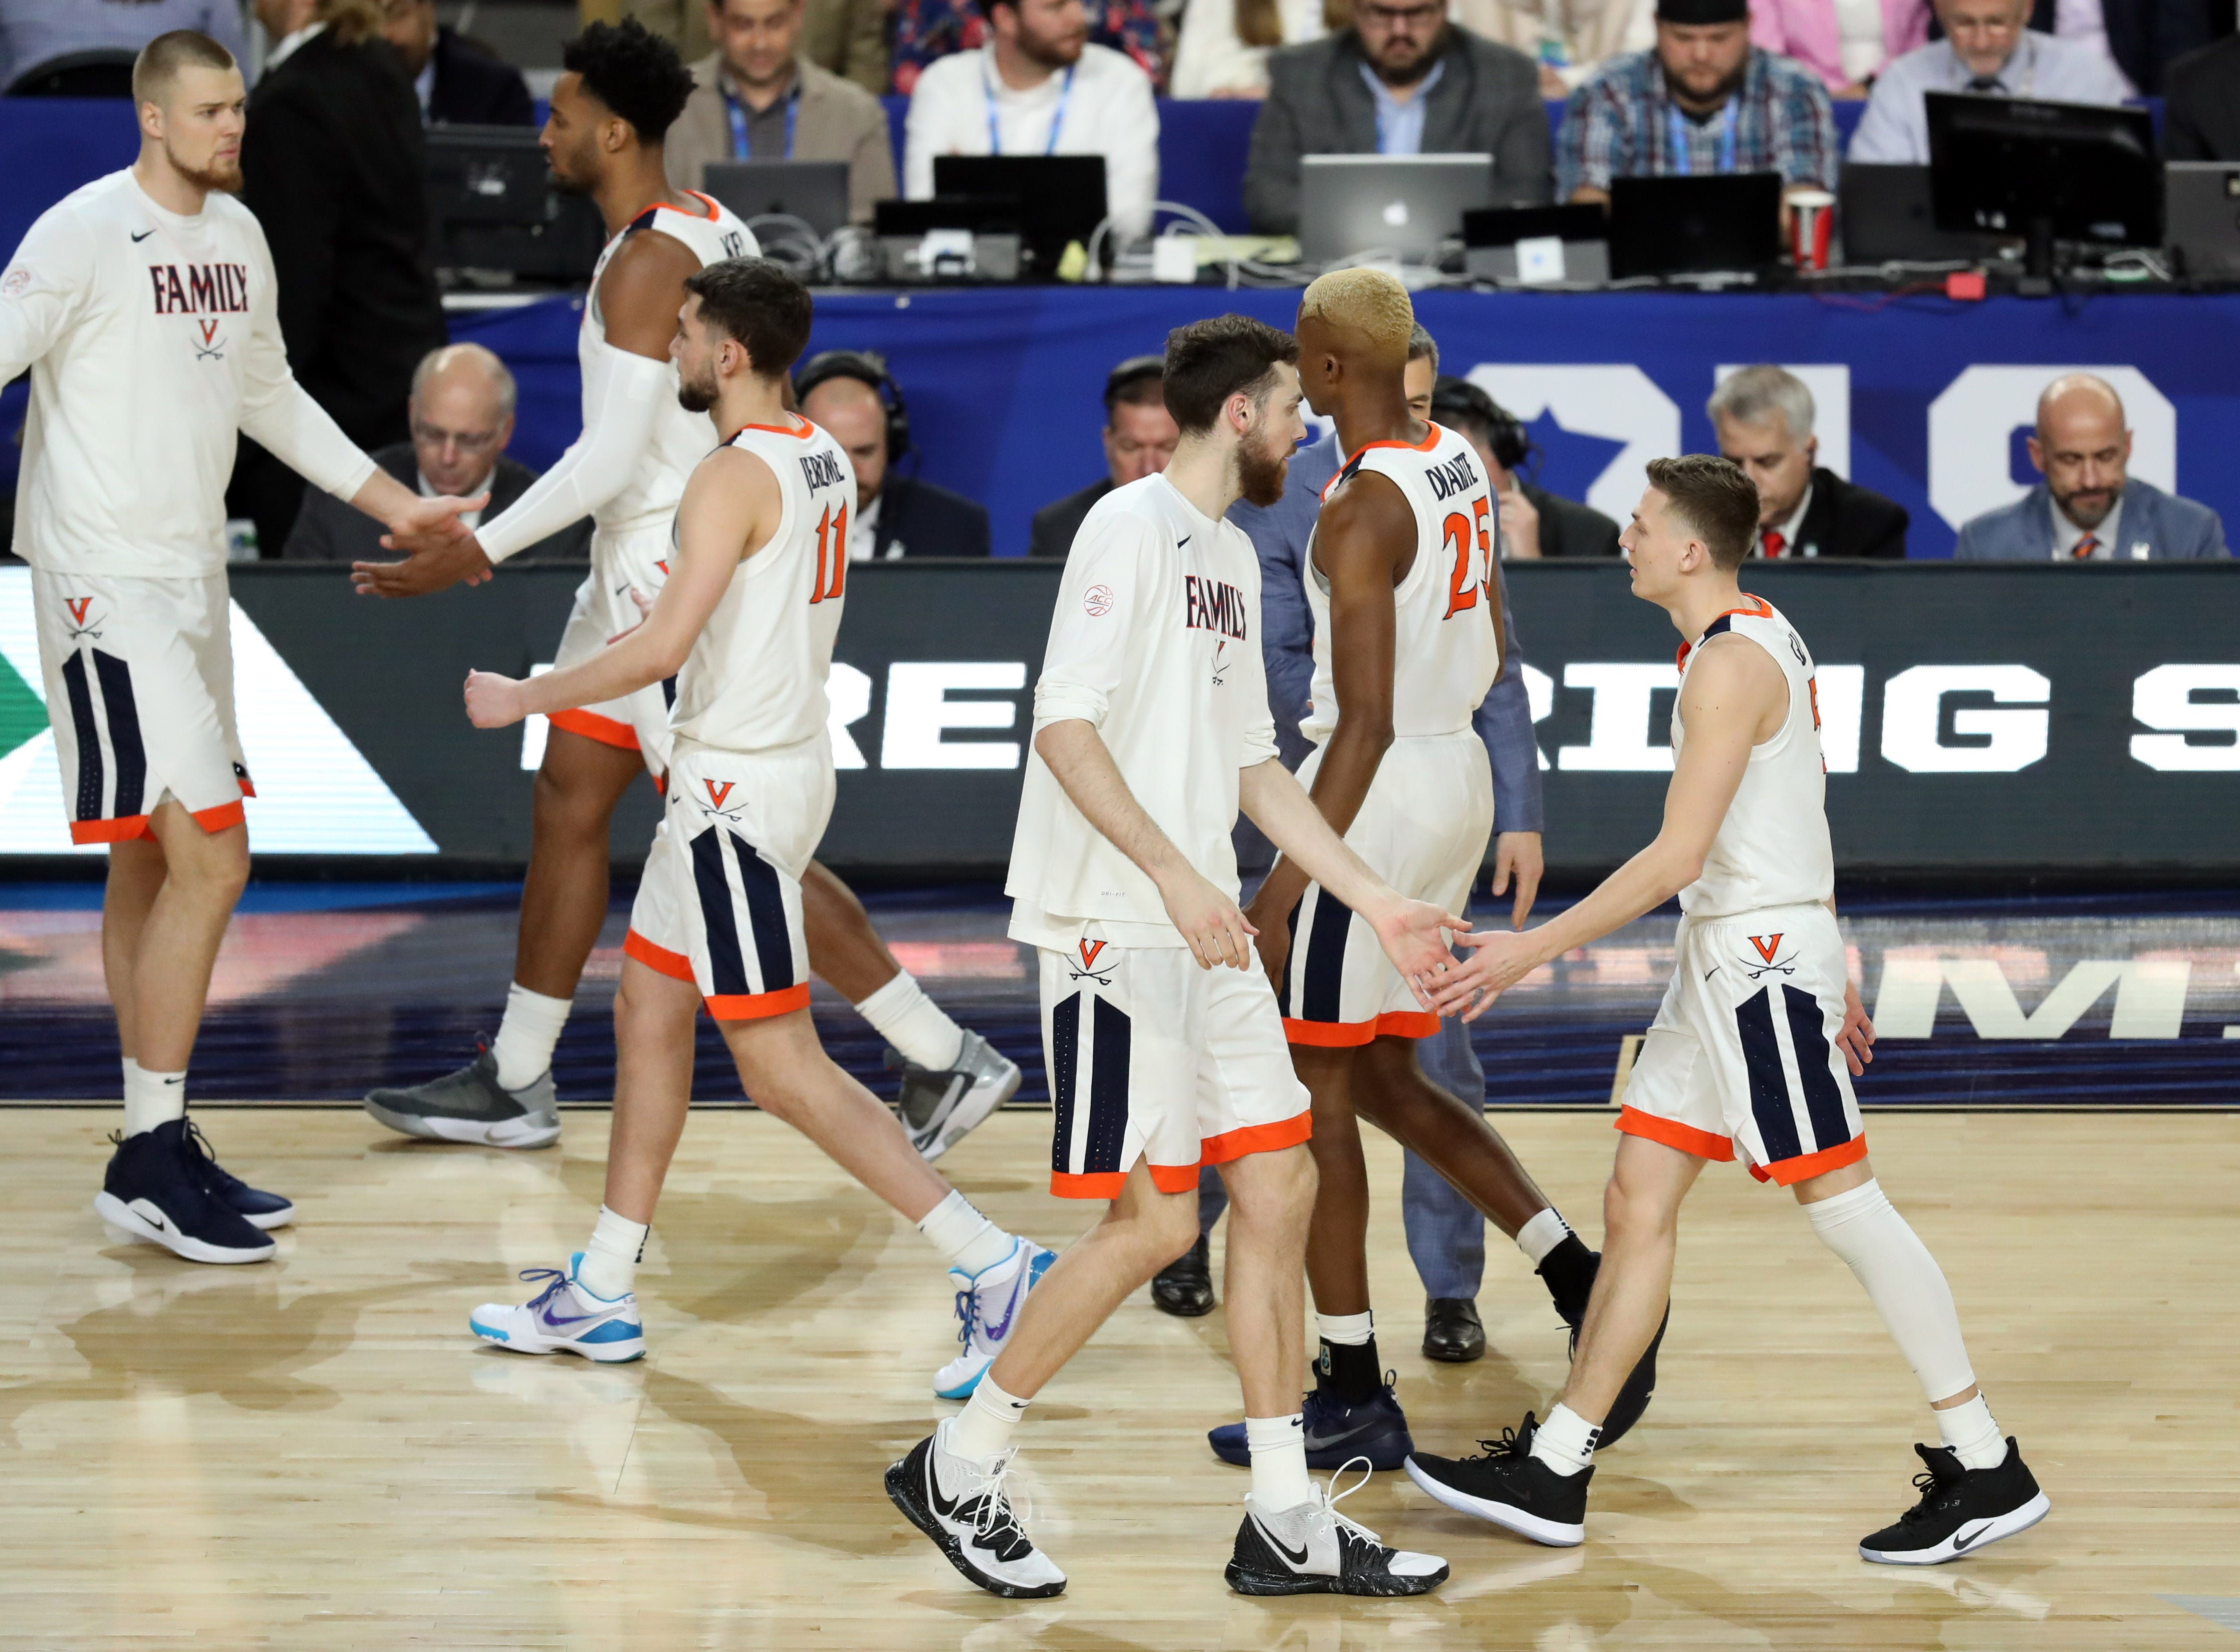 Apr 8, 2019; Minneapolis, MN, USA; The Virginia Cavaliers during a timeout in the first half against the Texas Tech Red Raiders in the championship game of the 2019 men's Final Four at US Bank Stadium. Mandatory Credit: Brace Hemmelgarn-USA TODAY Sports